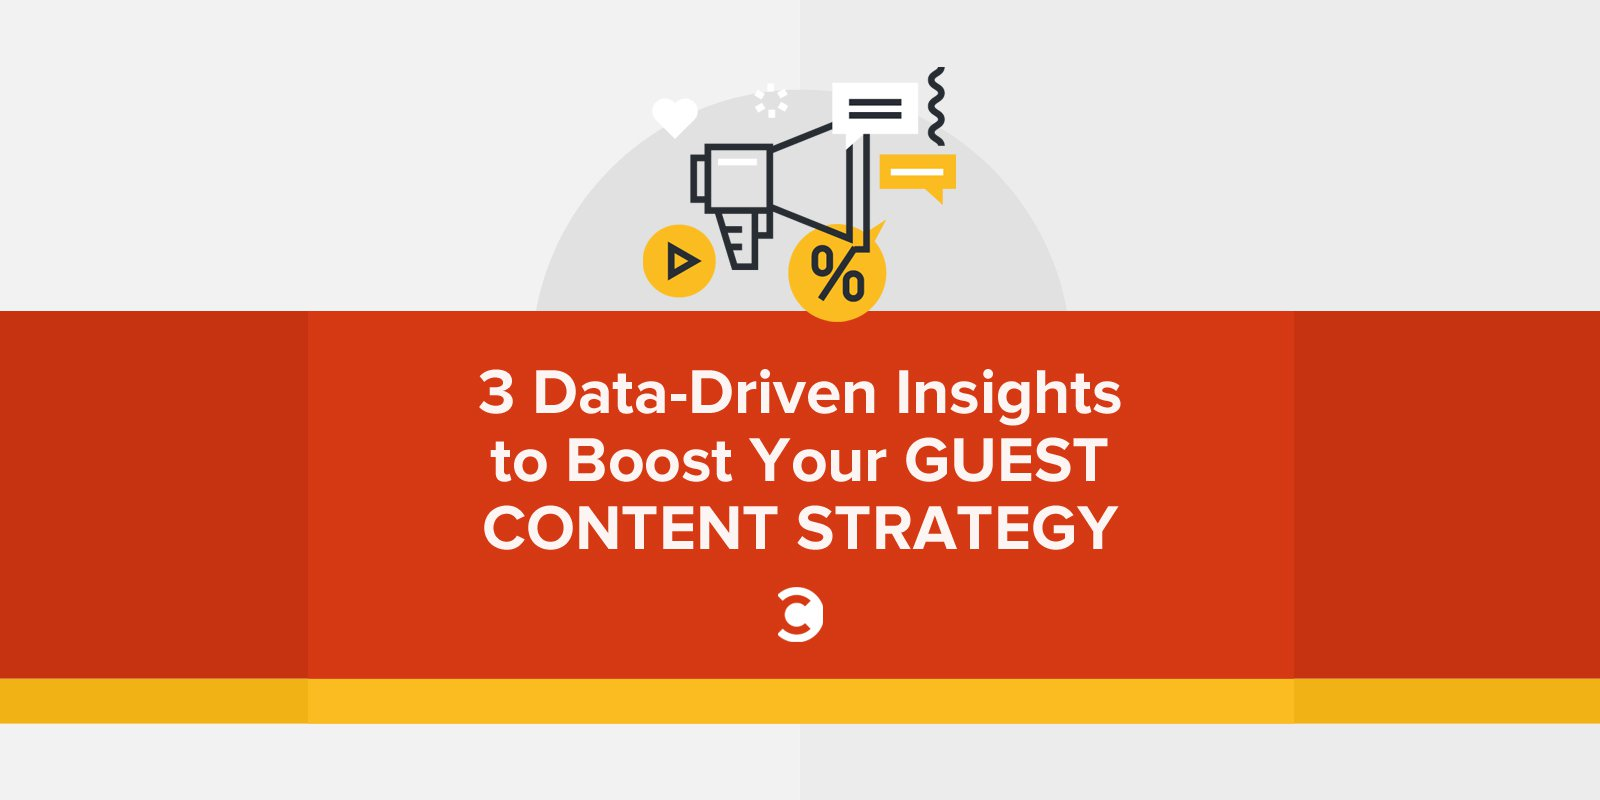 3 Data-Driven Insights to Boost Your Guest Content Strategy1